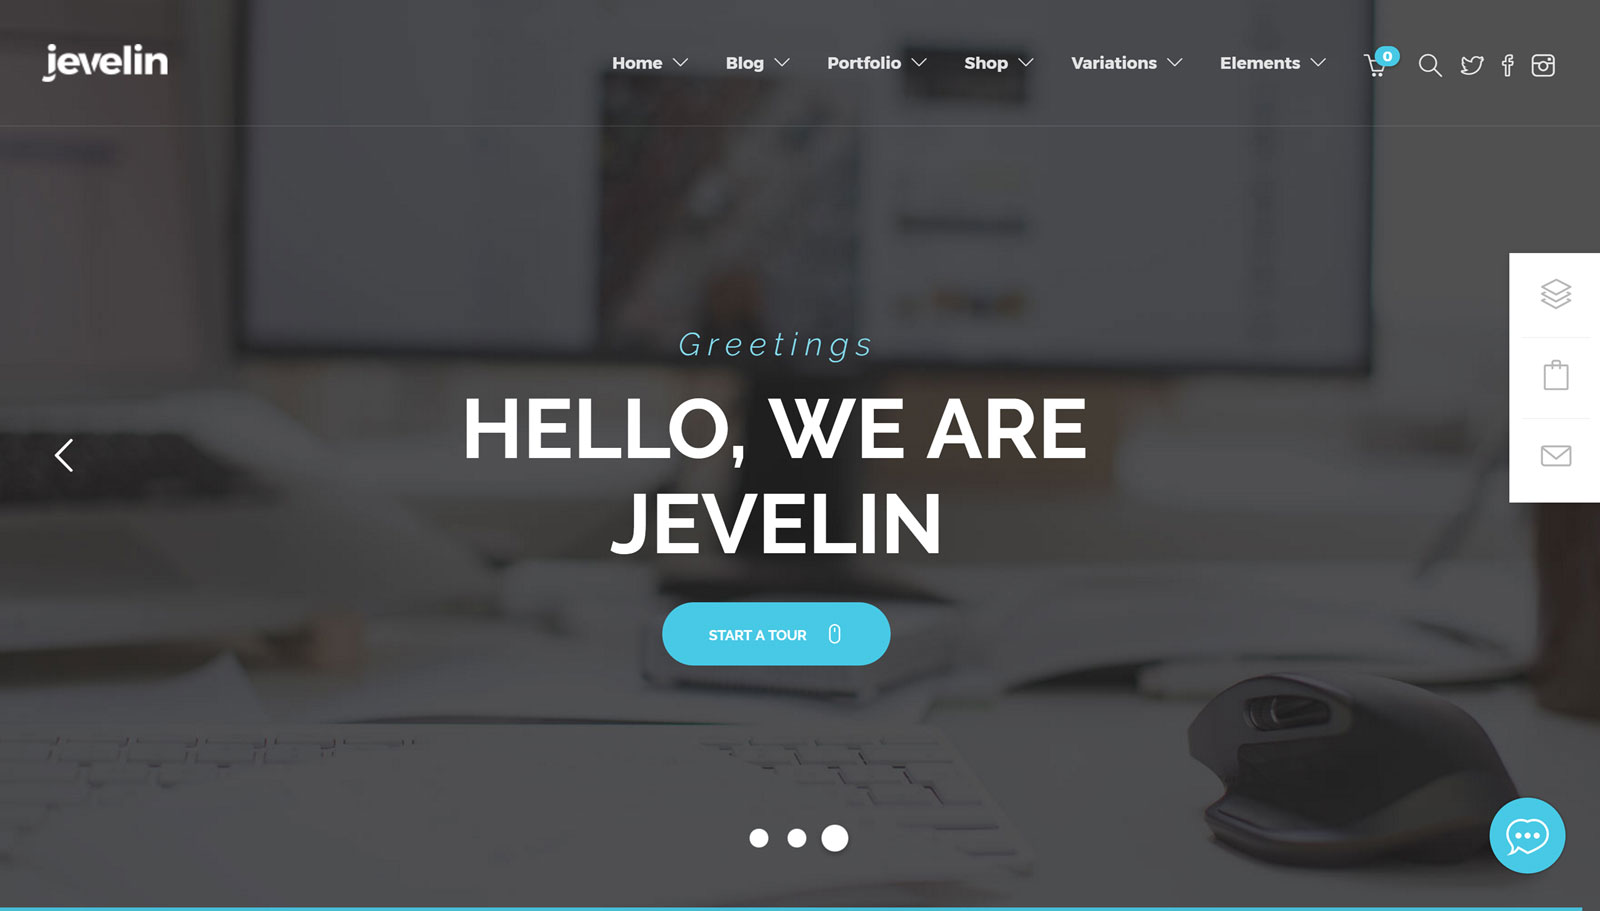 jevelin theme free download